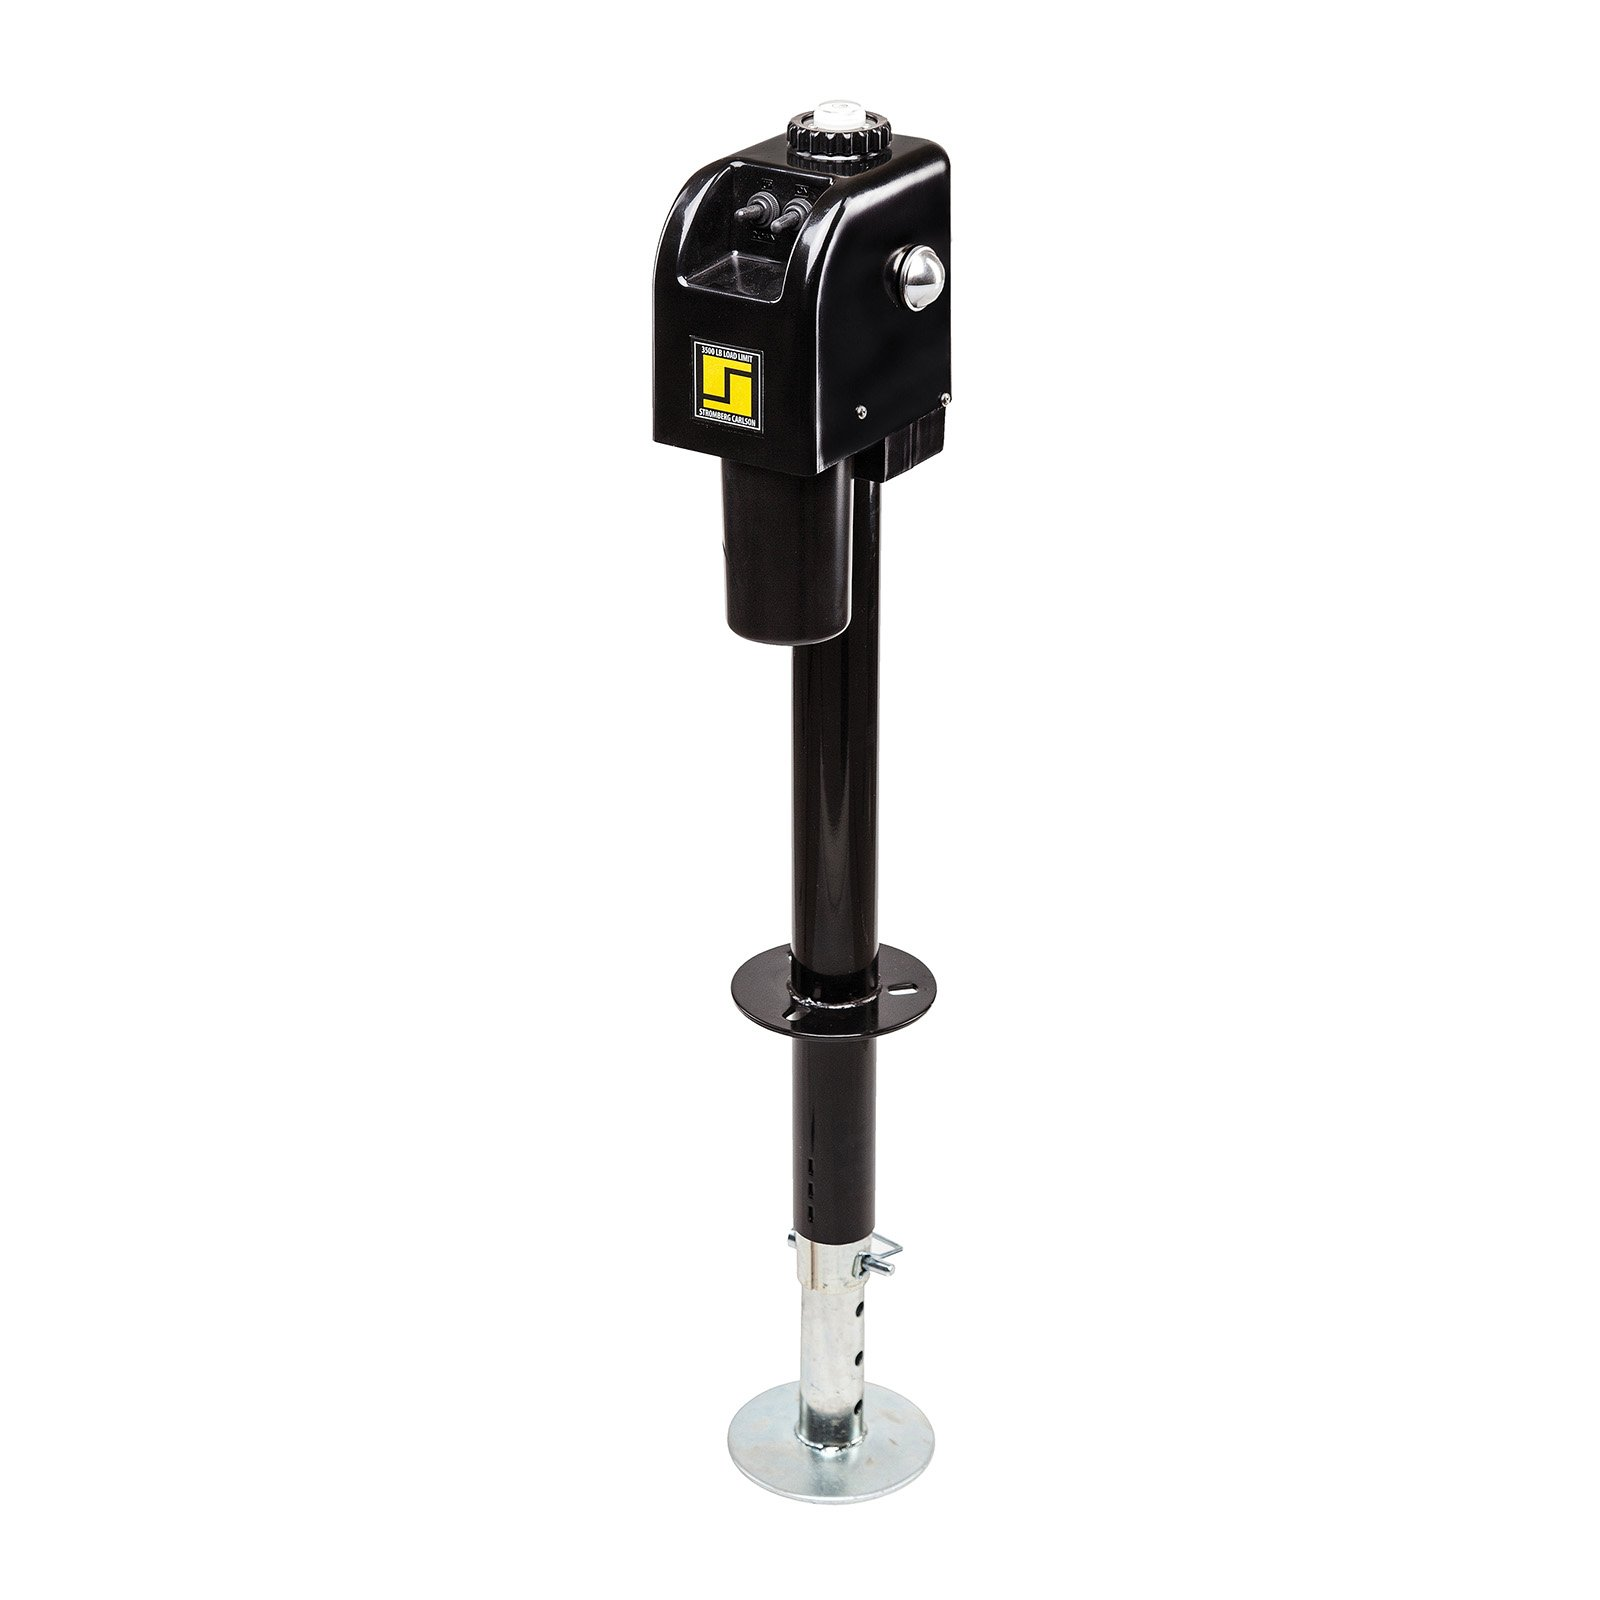 Stromberg Carlson JET-3755 Black 3500 lb. Electric Tongue Jack with Light by Stromberg Carlson